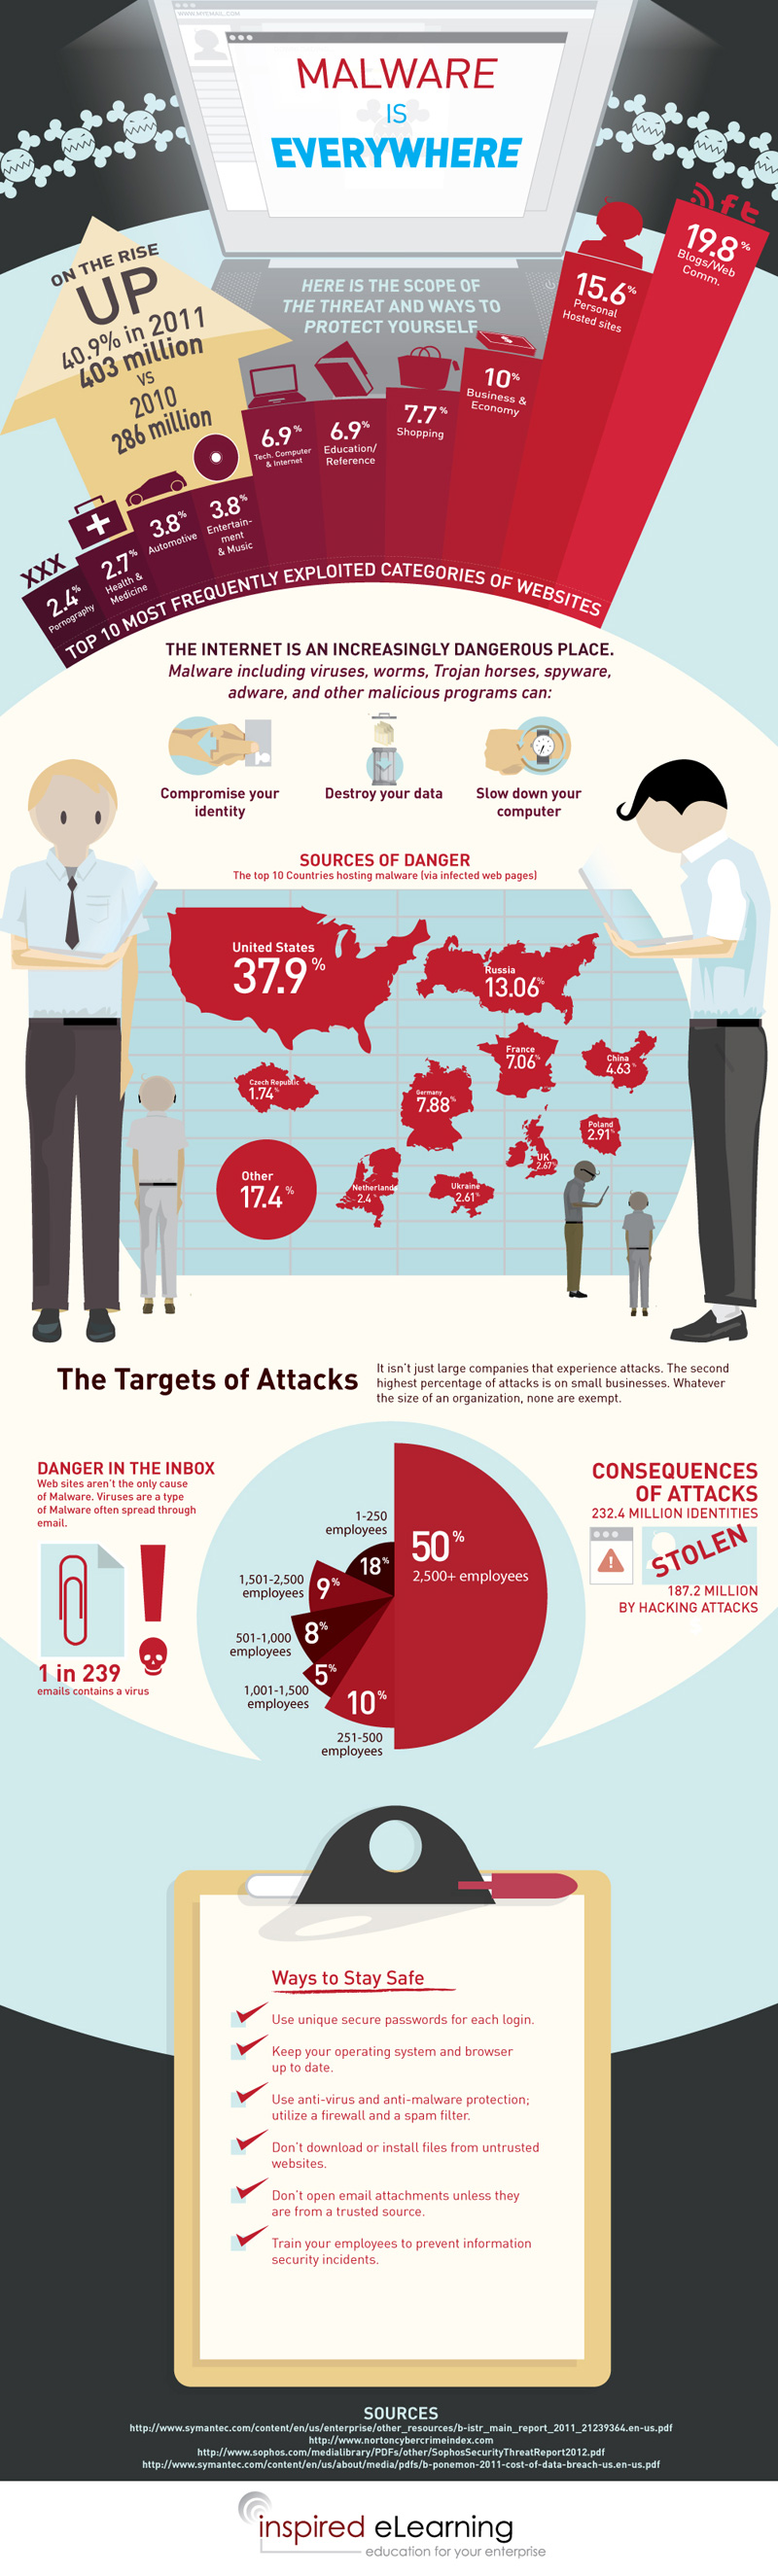 How Much Malware is Out There [infographic]